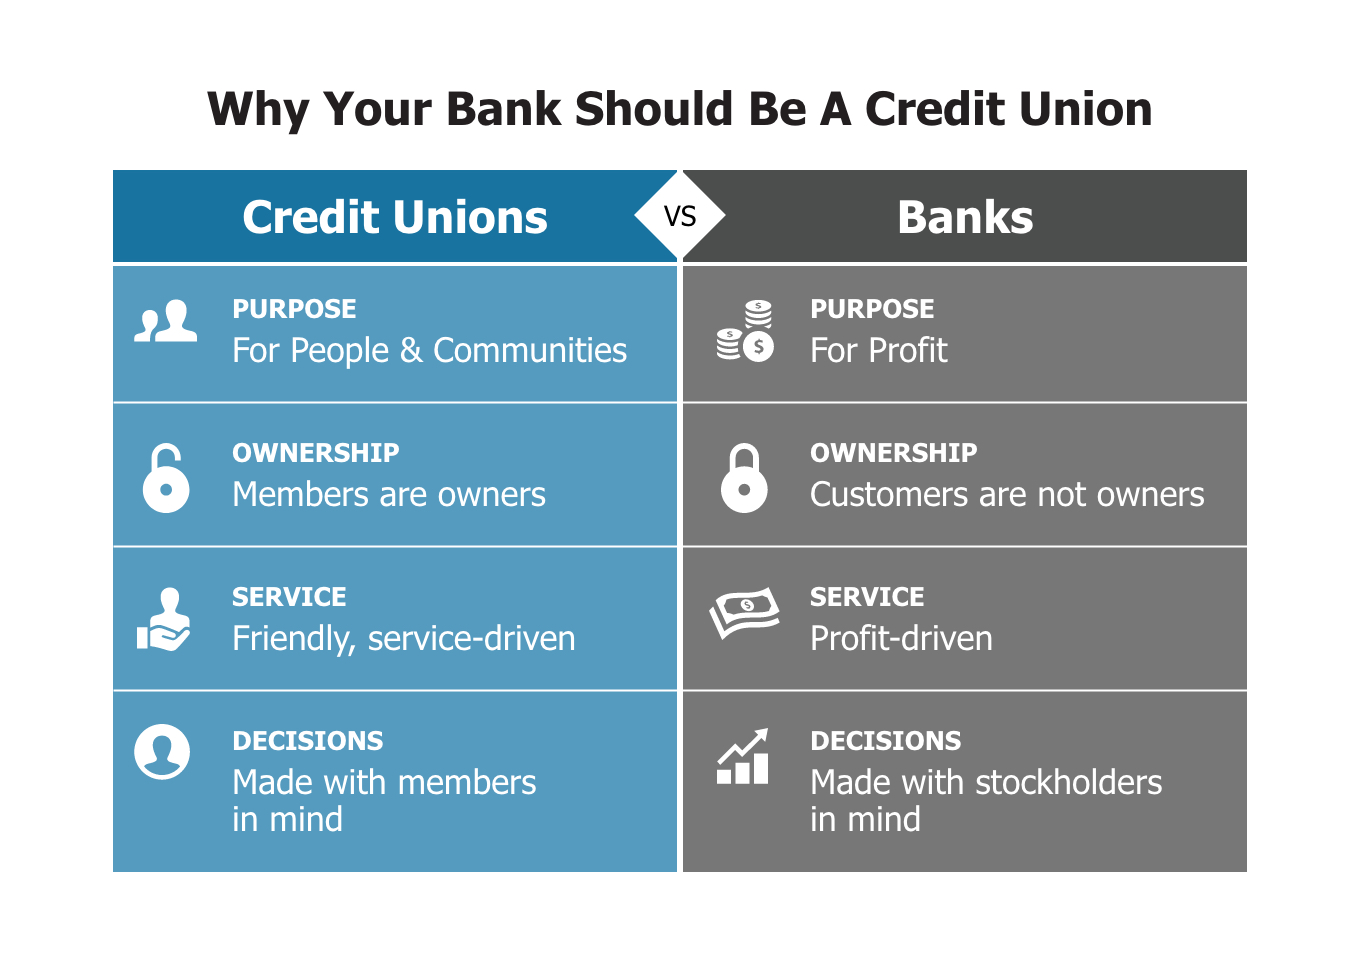 Why your bank should be a credit union graphic